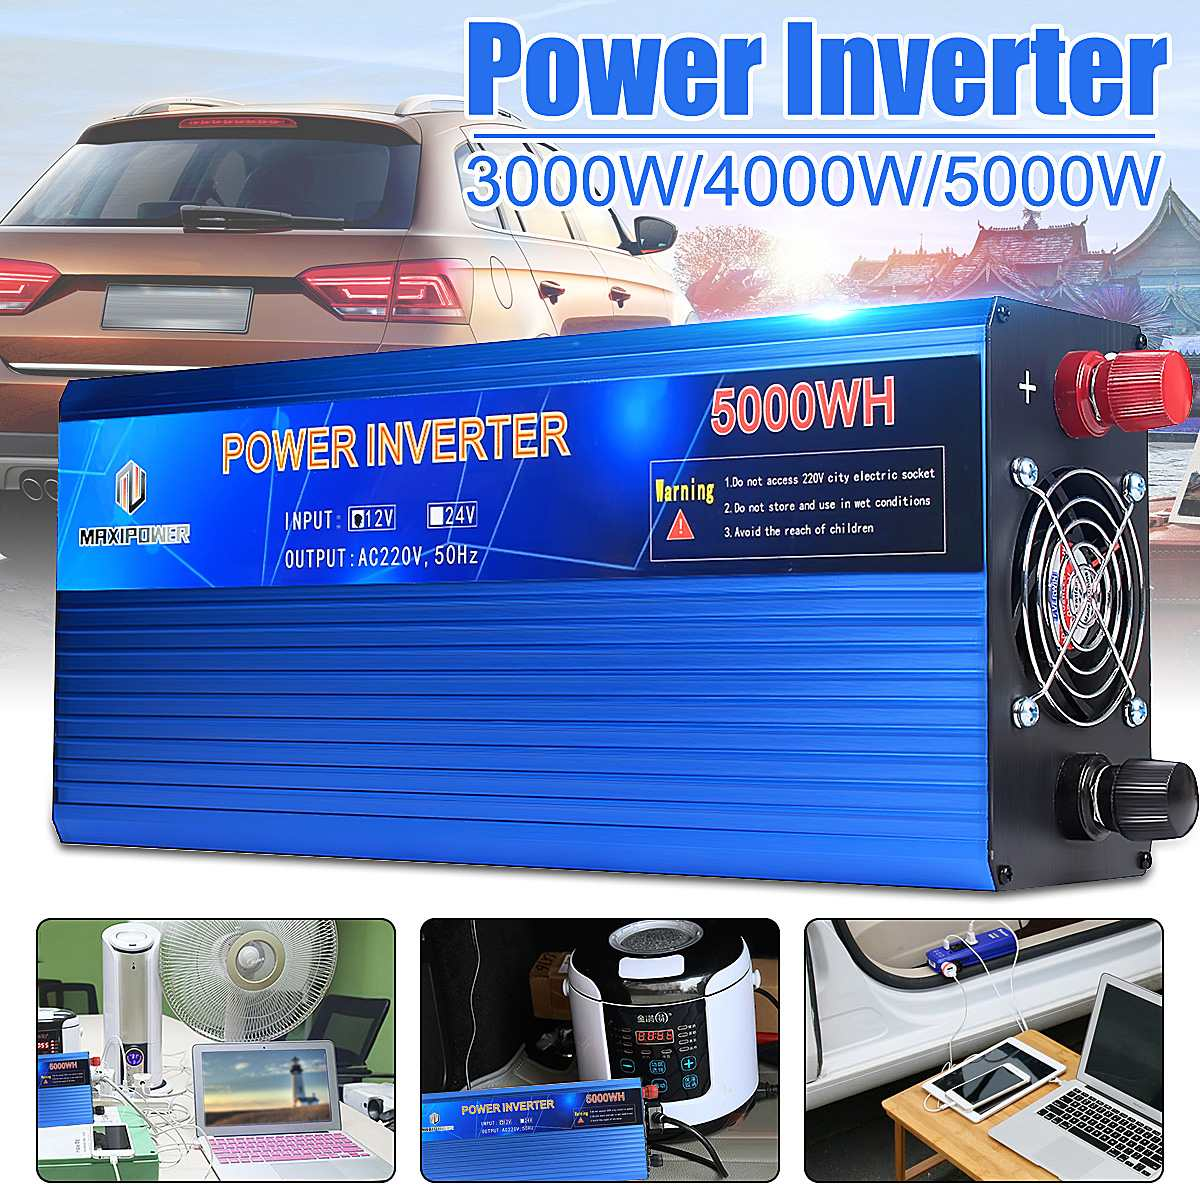 3000/4000/5000W Peaks Modified Sine Wave Power Inverter DC12V to AC220V Double LED digital display3000/4000/5000W Peaks Modified Sine Wave Power Inverter DC12V to AC220V Double LED digital display